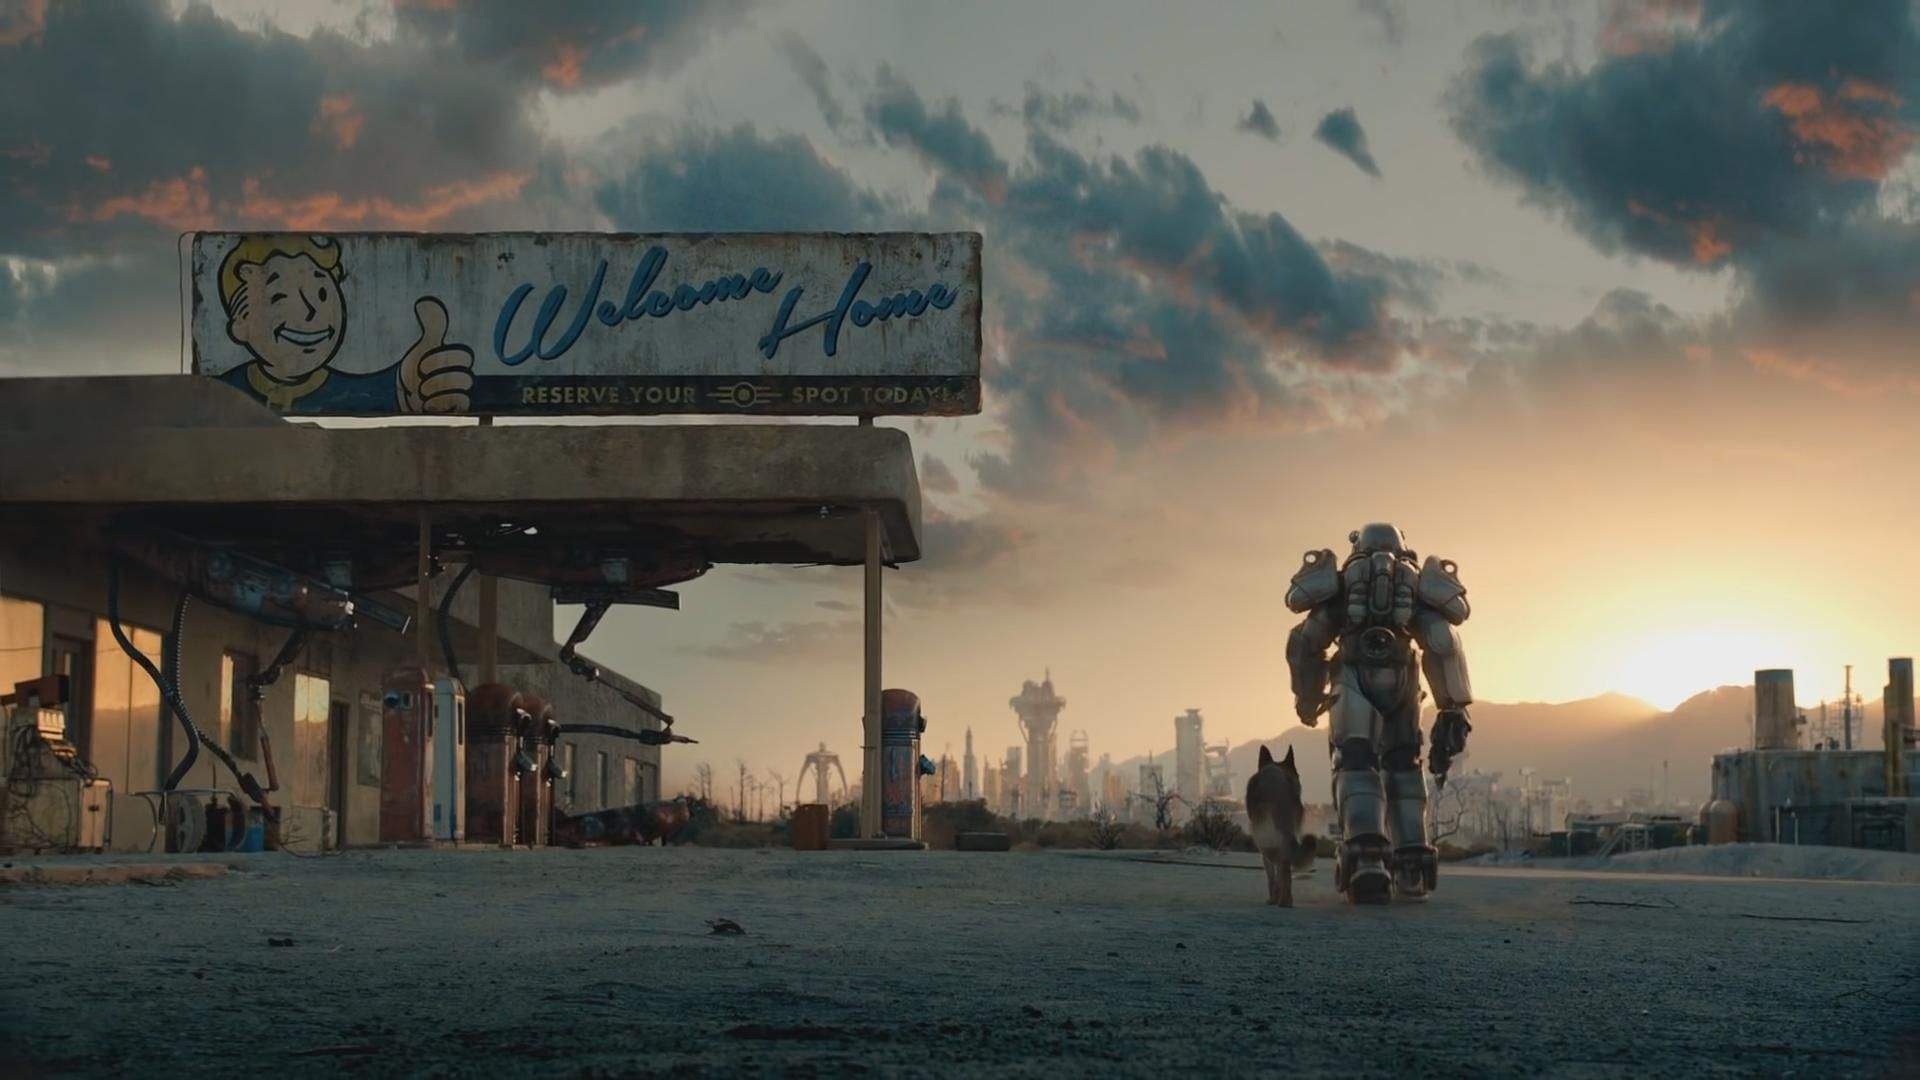 Welcome Home Fallout 4 R Wallpapers Fallout Wallpaper Fallout 4 Wallpapers Fallout Art